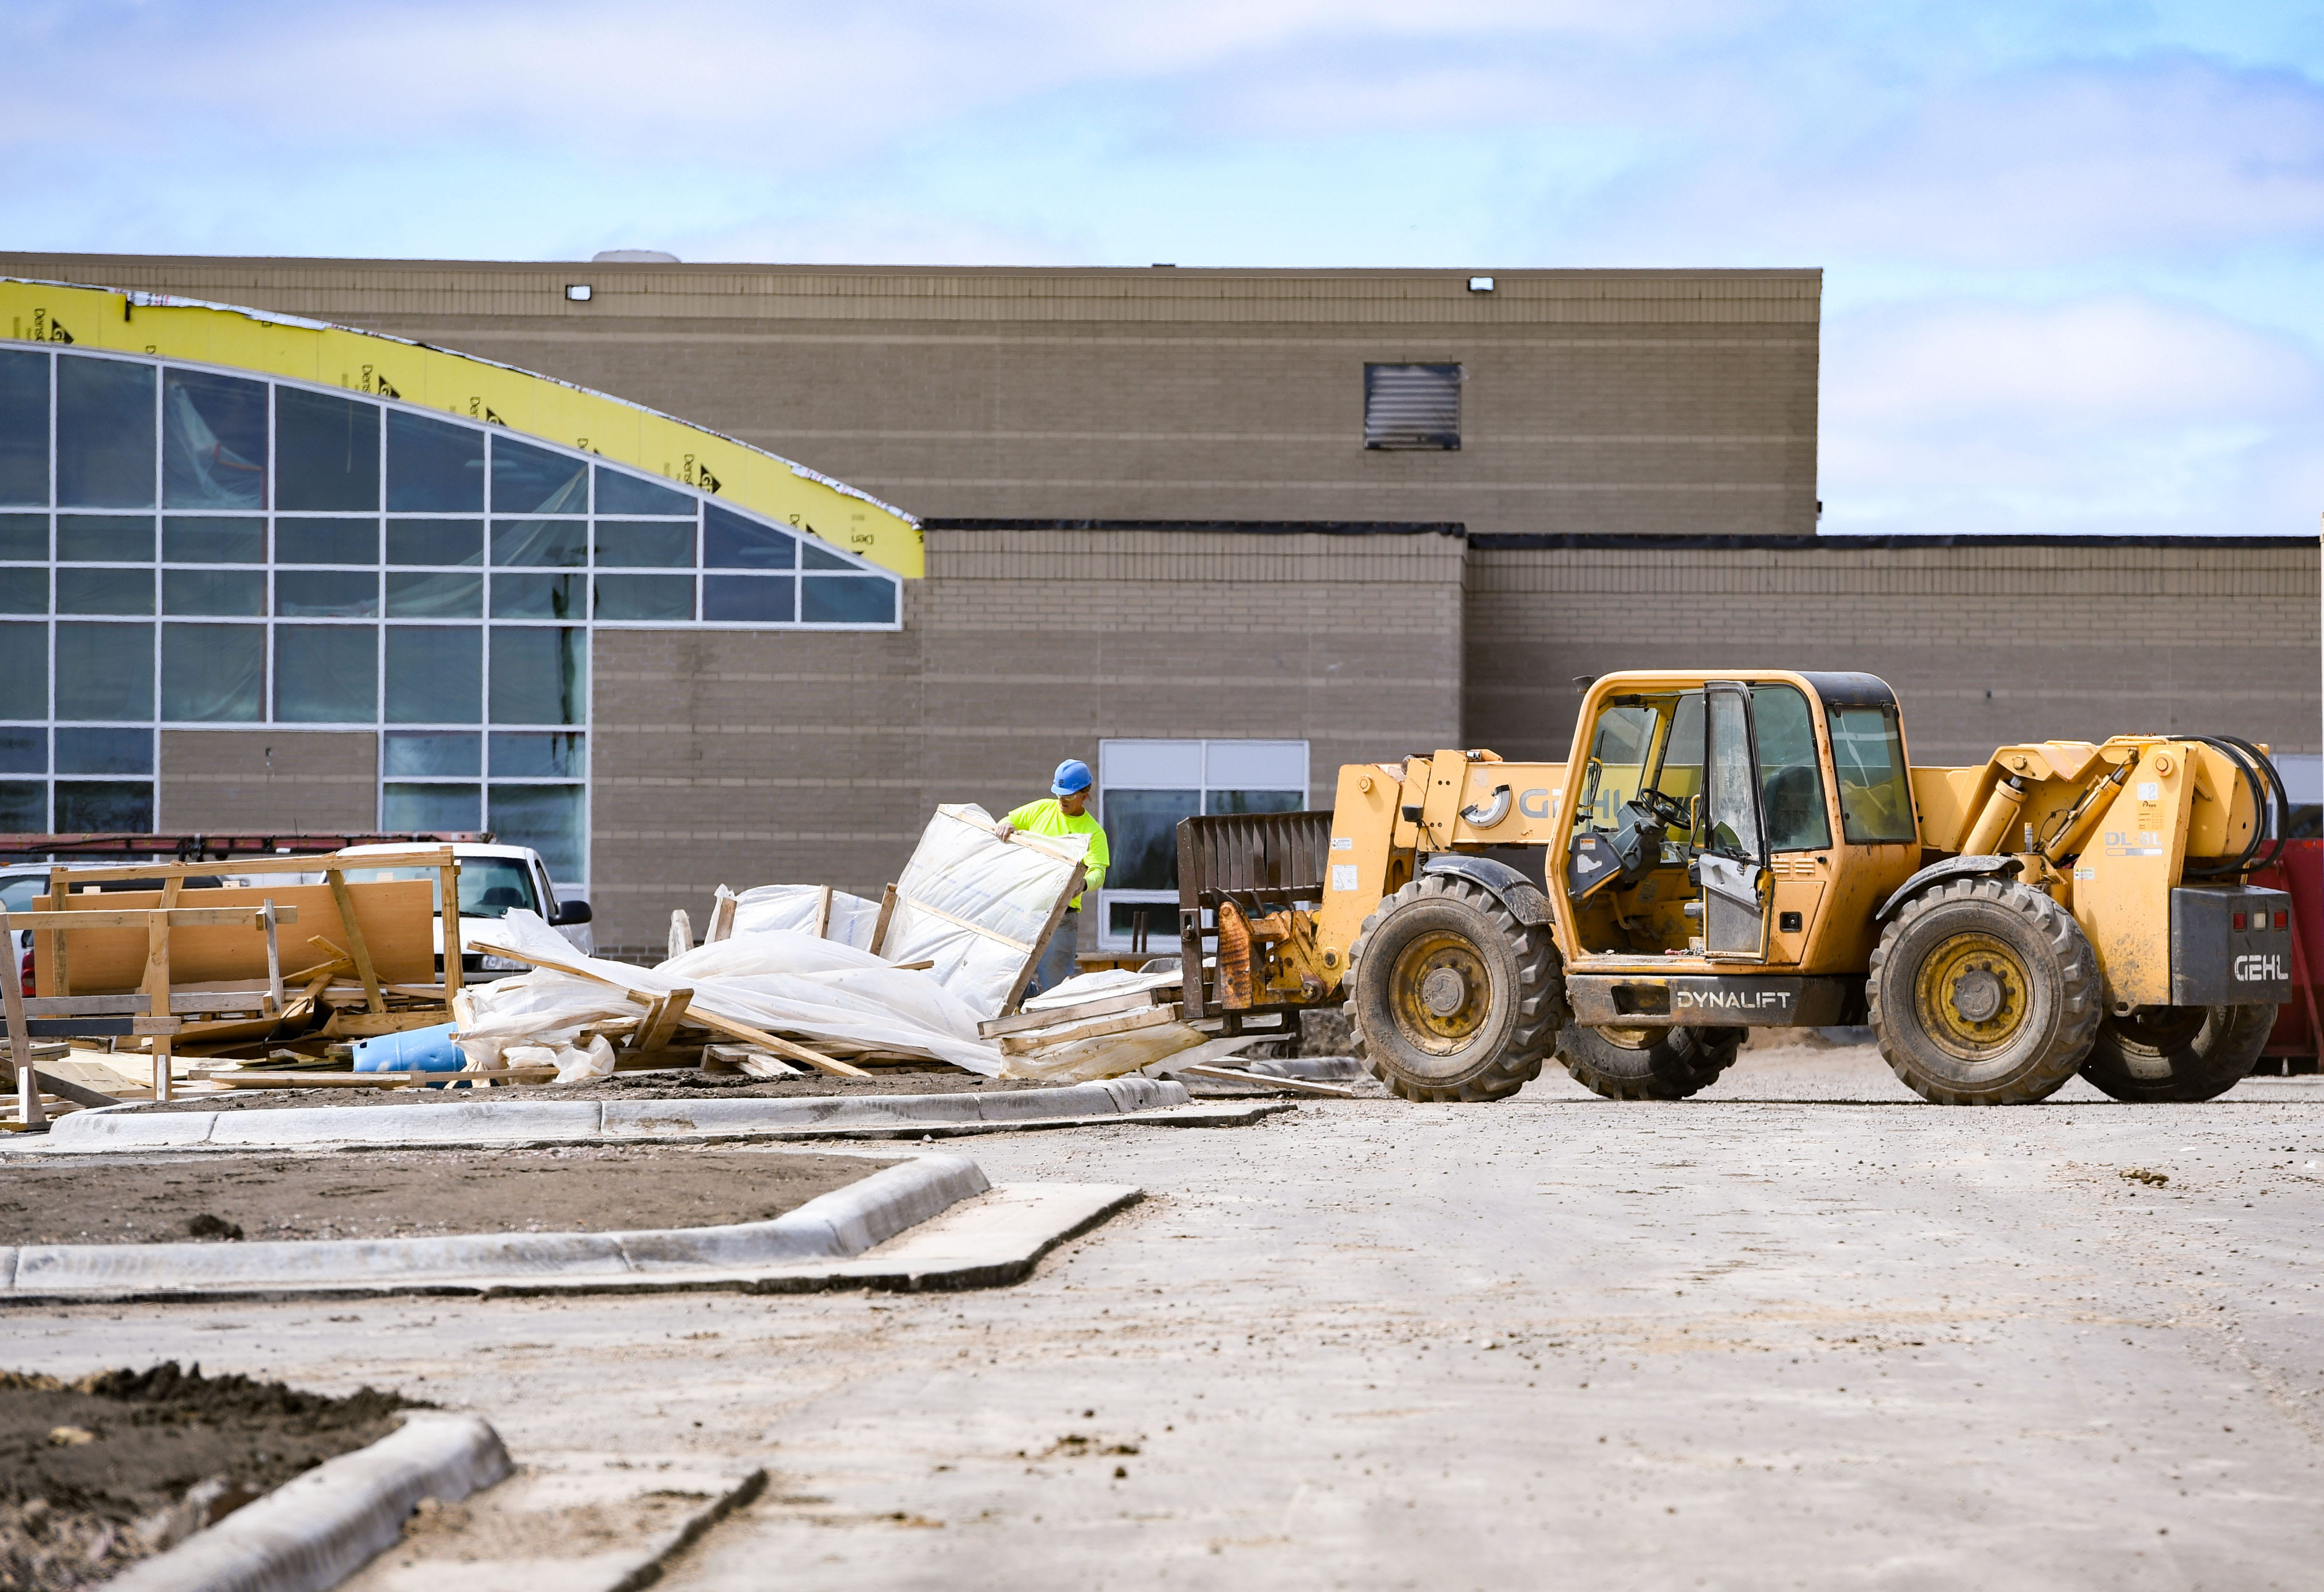 An exterior view of bulldozers in front of a school building